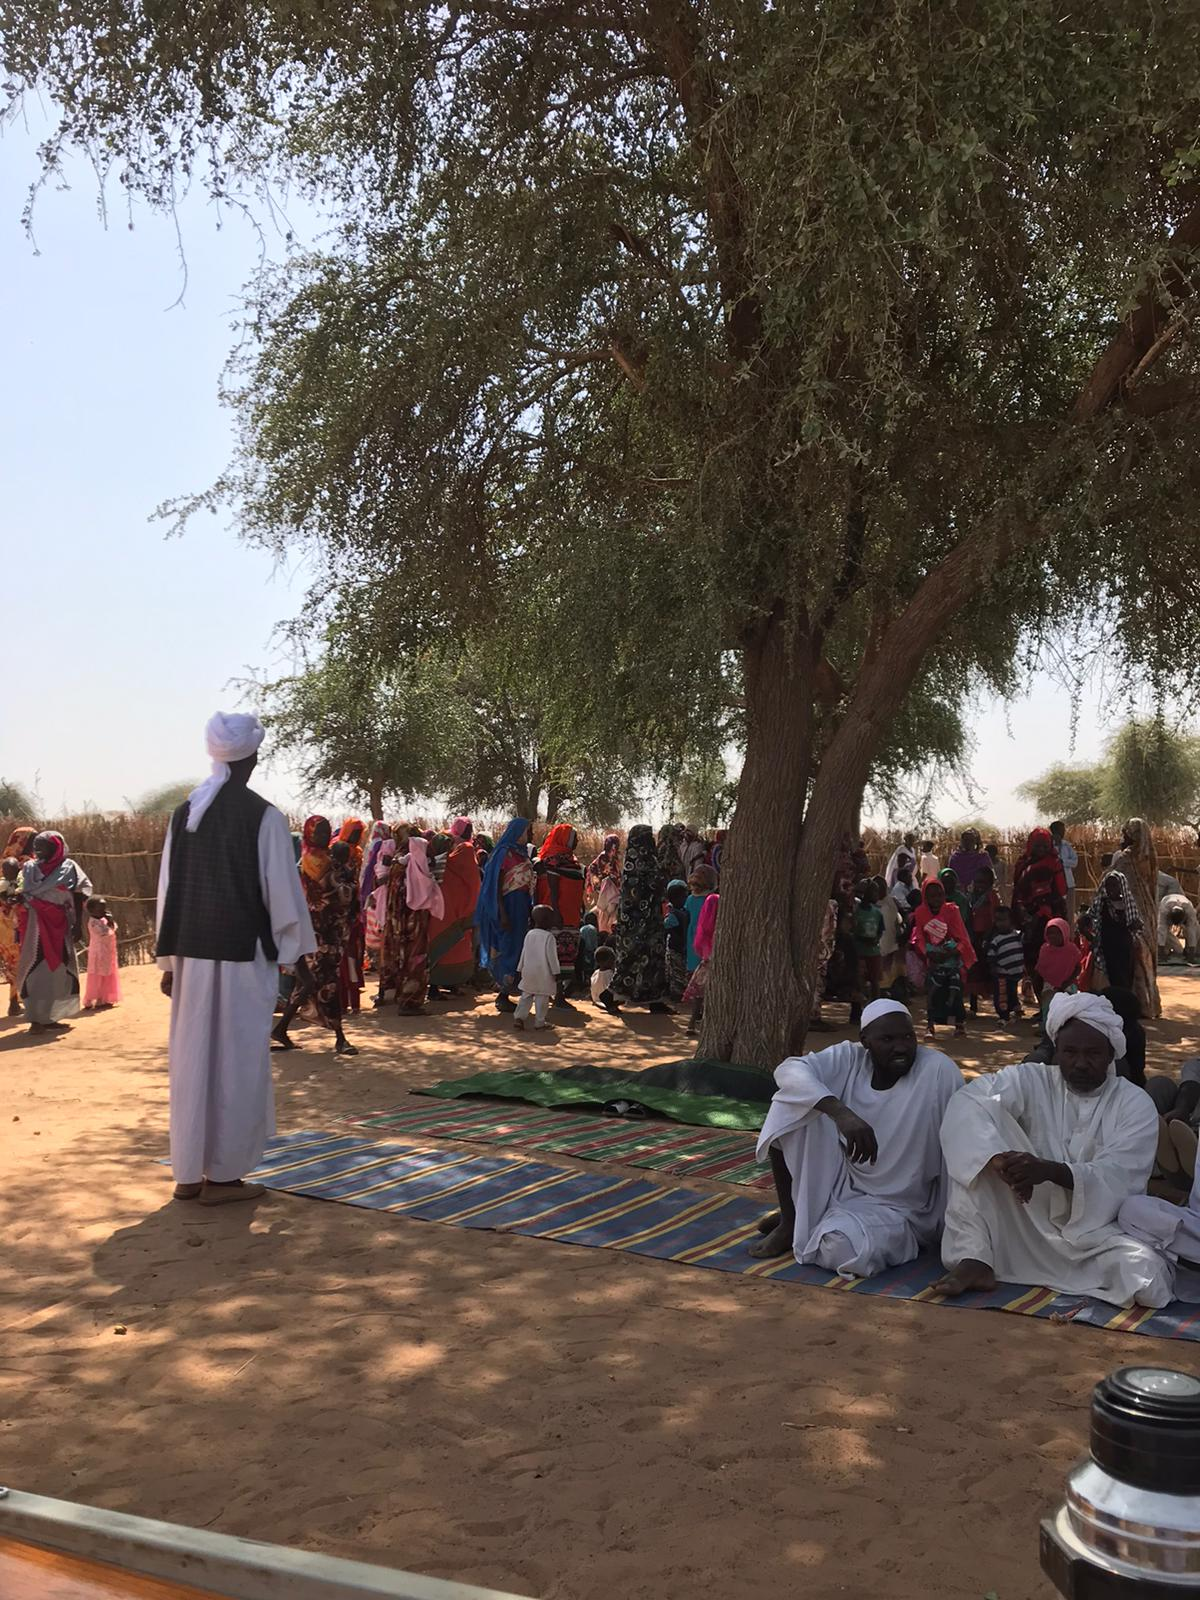 New village – Abu Sinait A – desperately in need. They don't even have kitchen utensils. Their harvest was small and many dont have a donkey. They need everything.